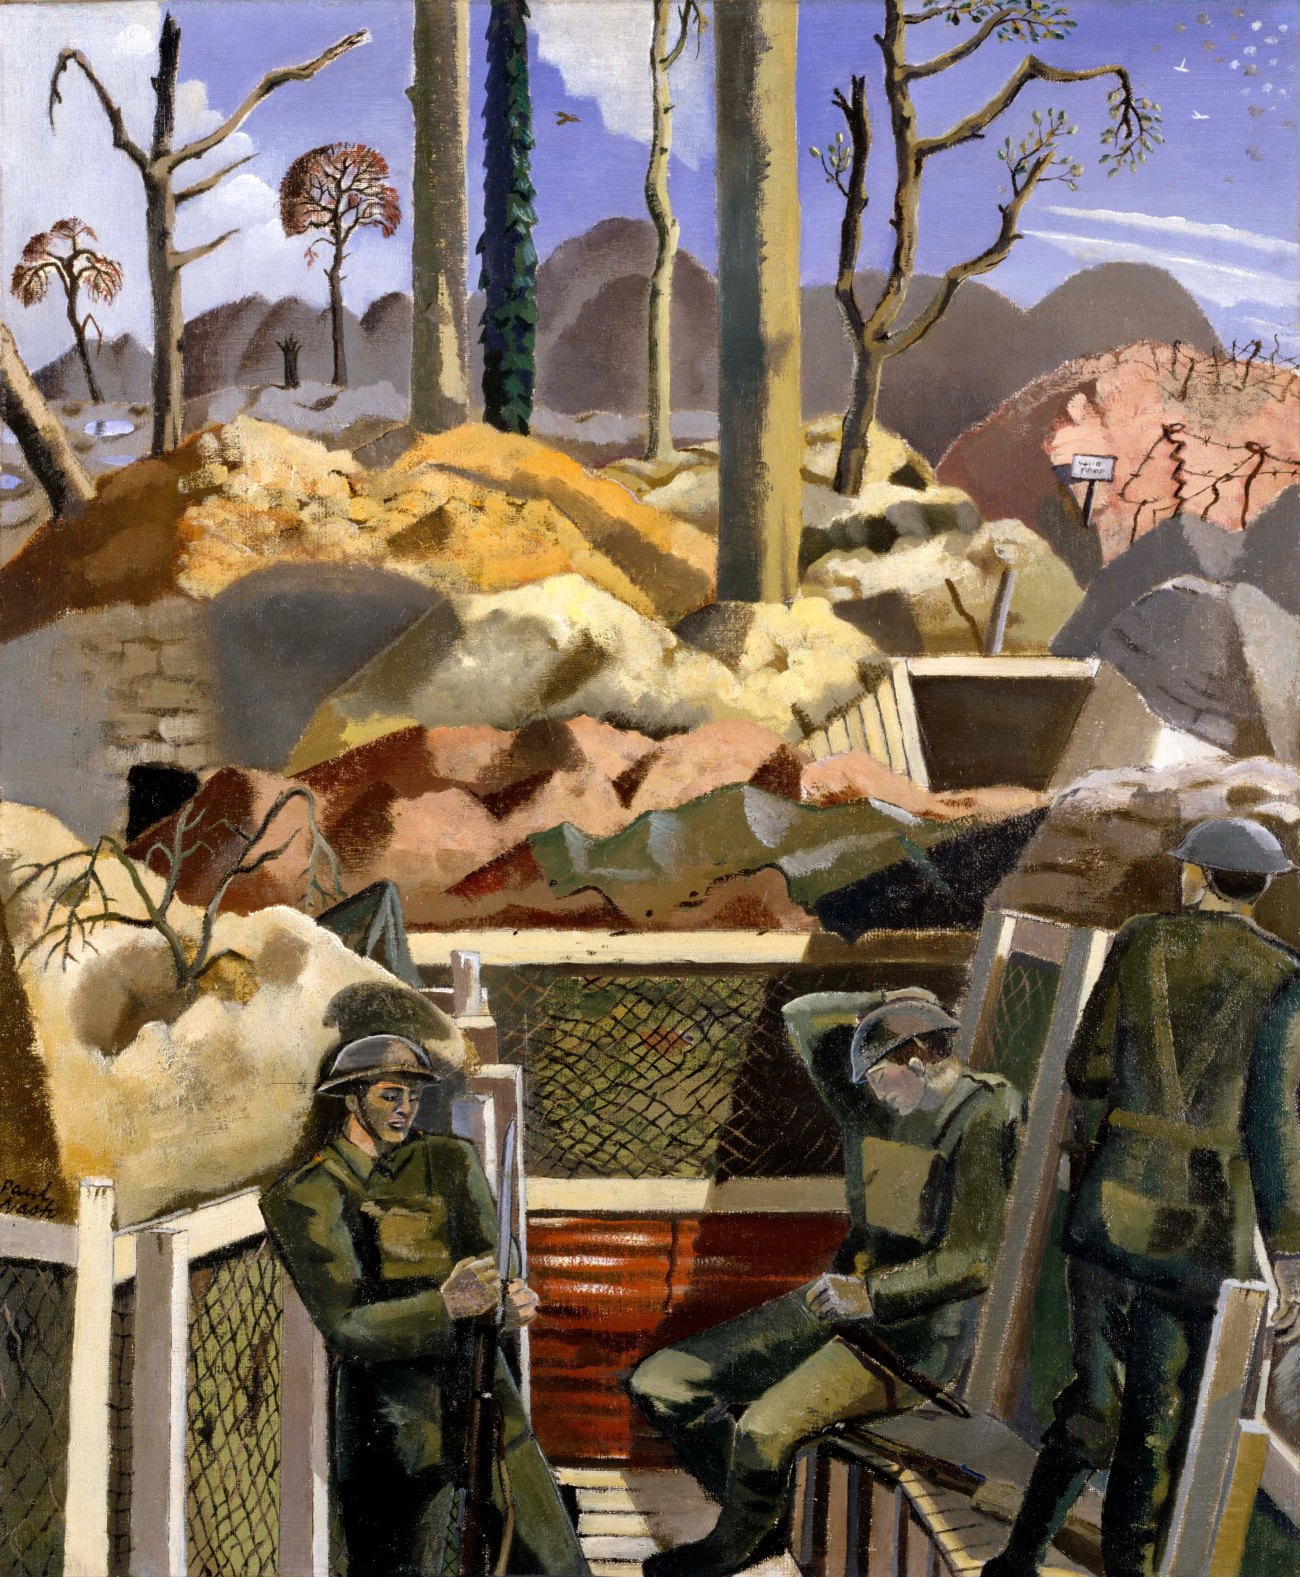 Spring in the Trenches - Paul Nash c/o Tate London